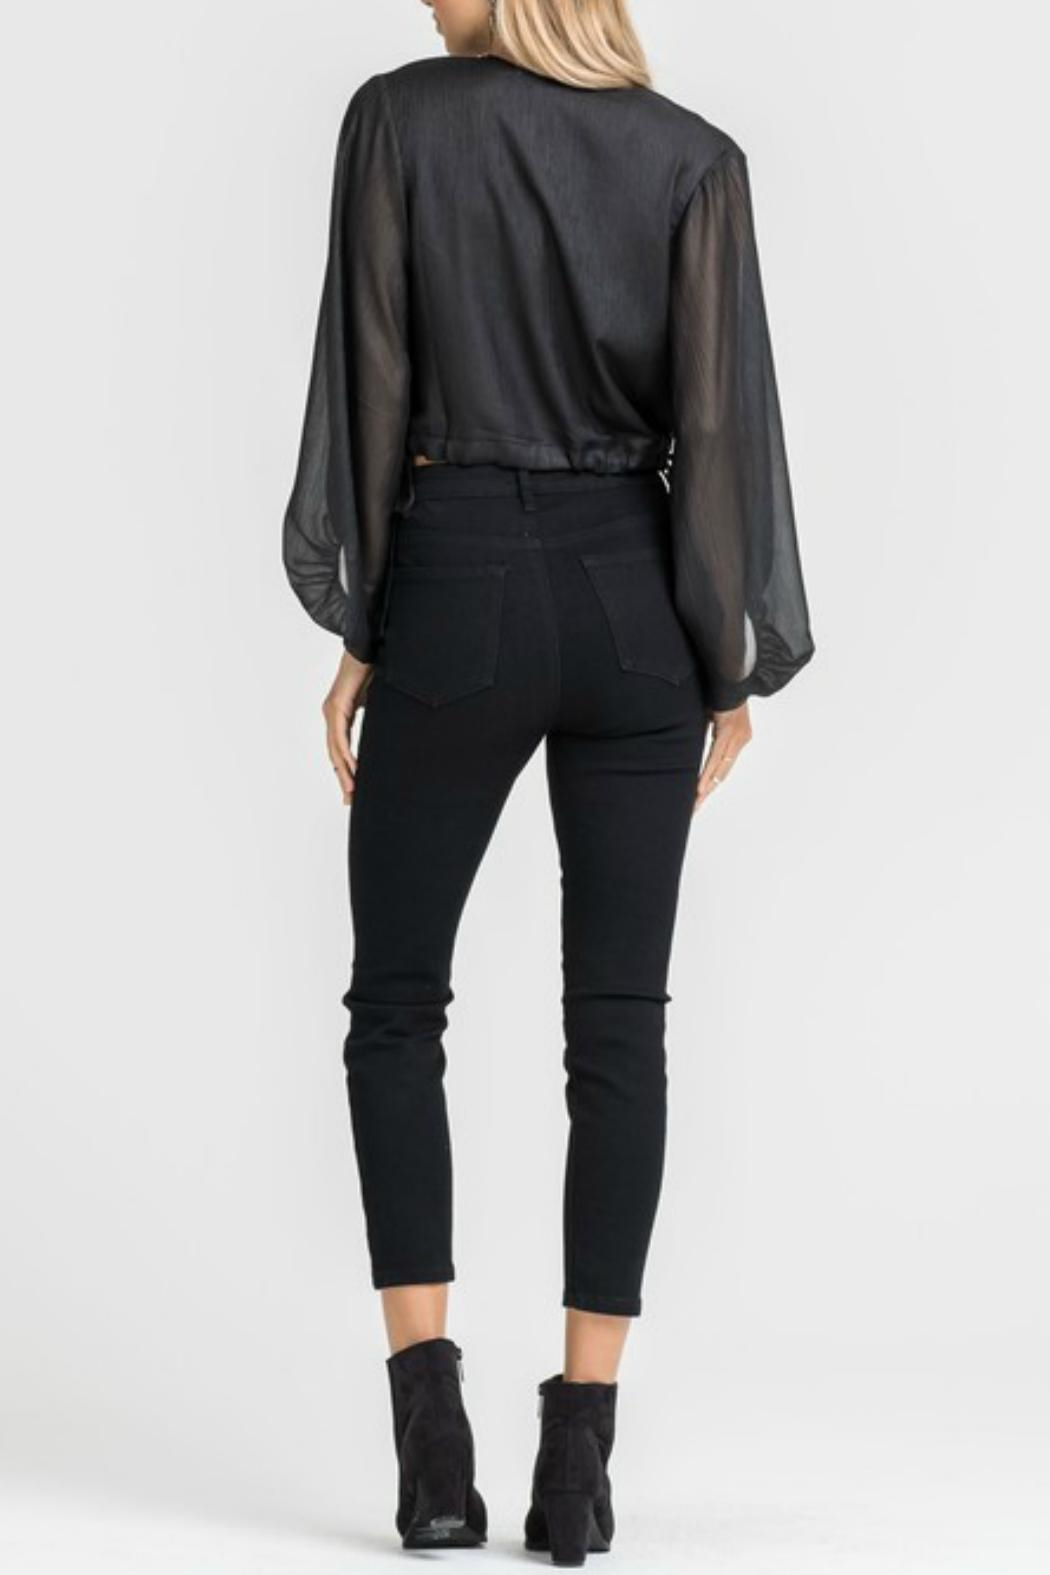 Lush Black Cropped Blouse - Side Cropped Image